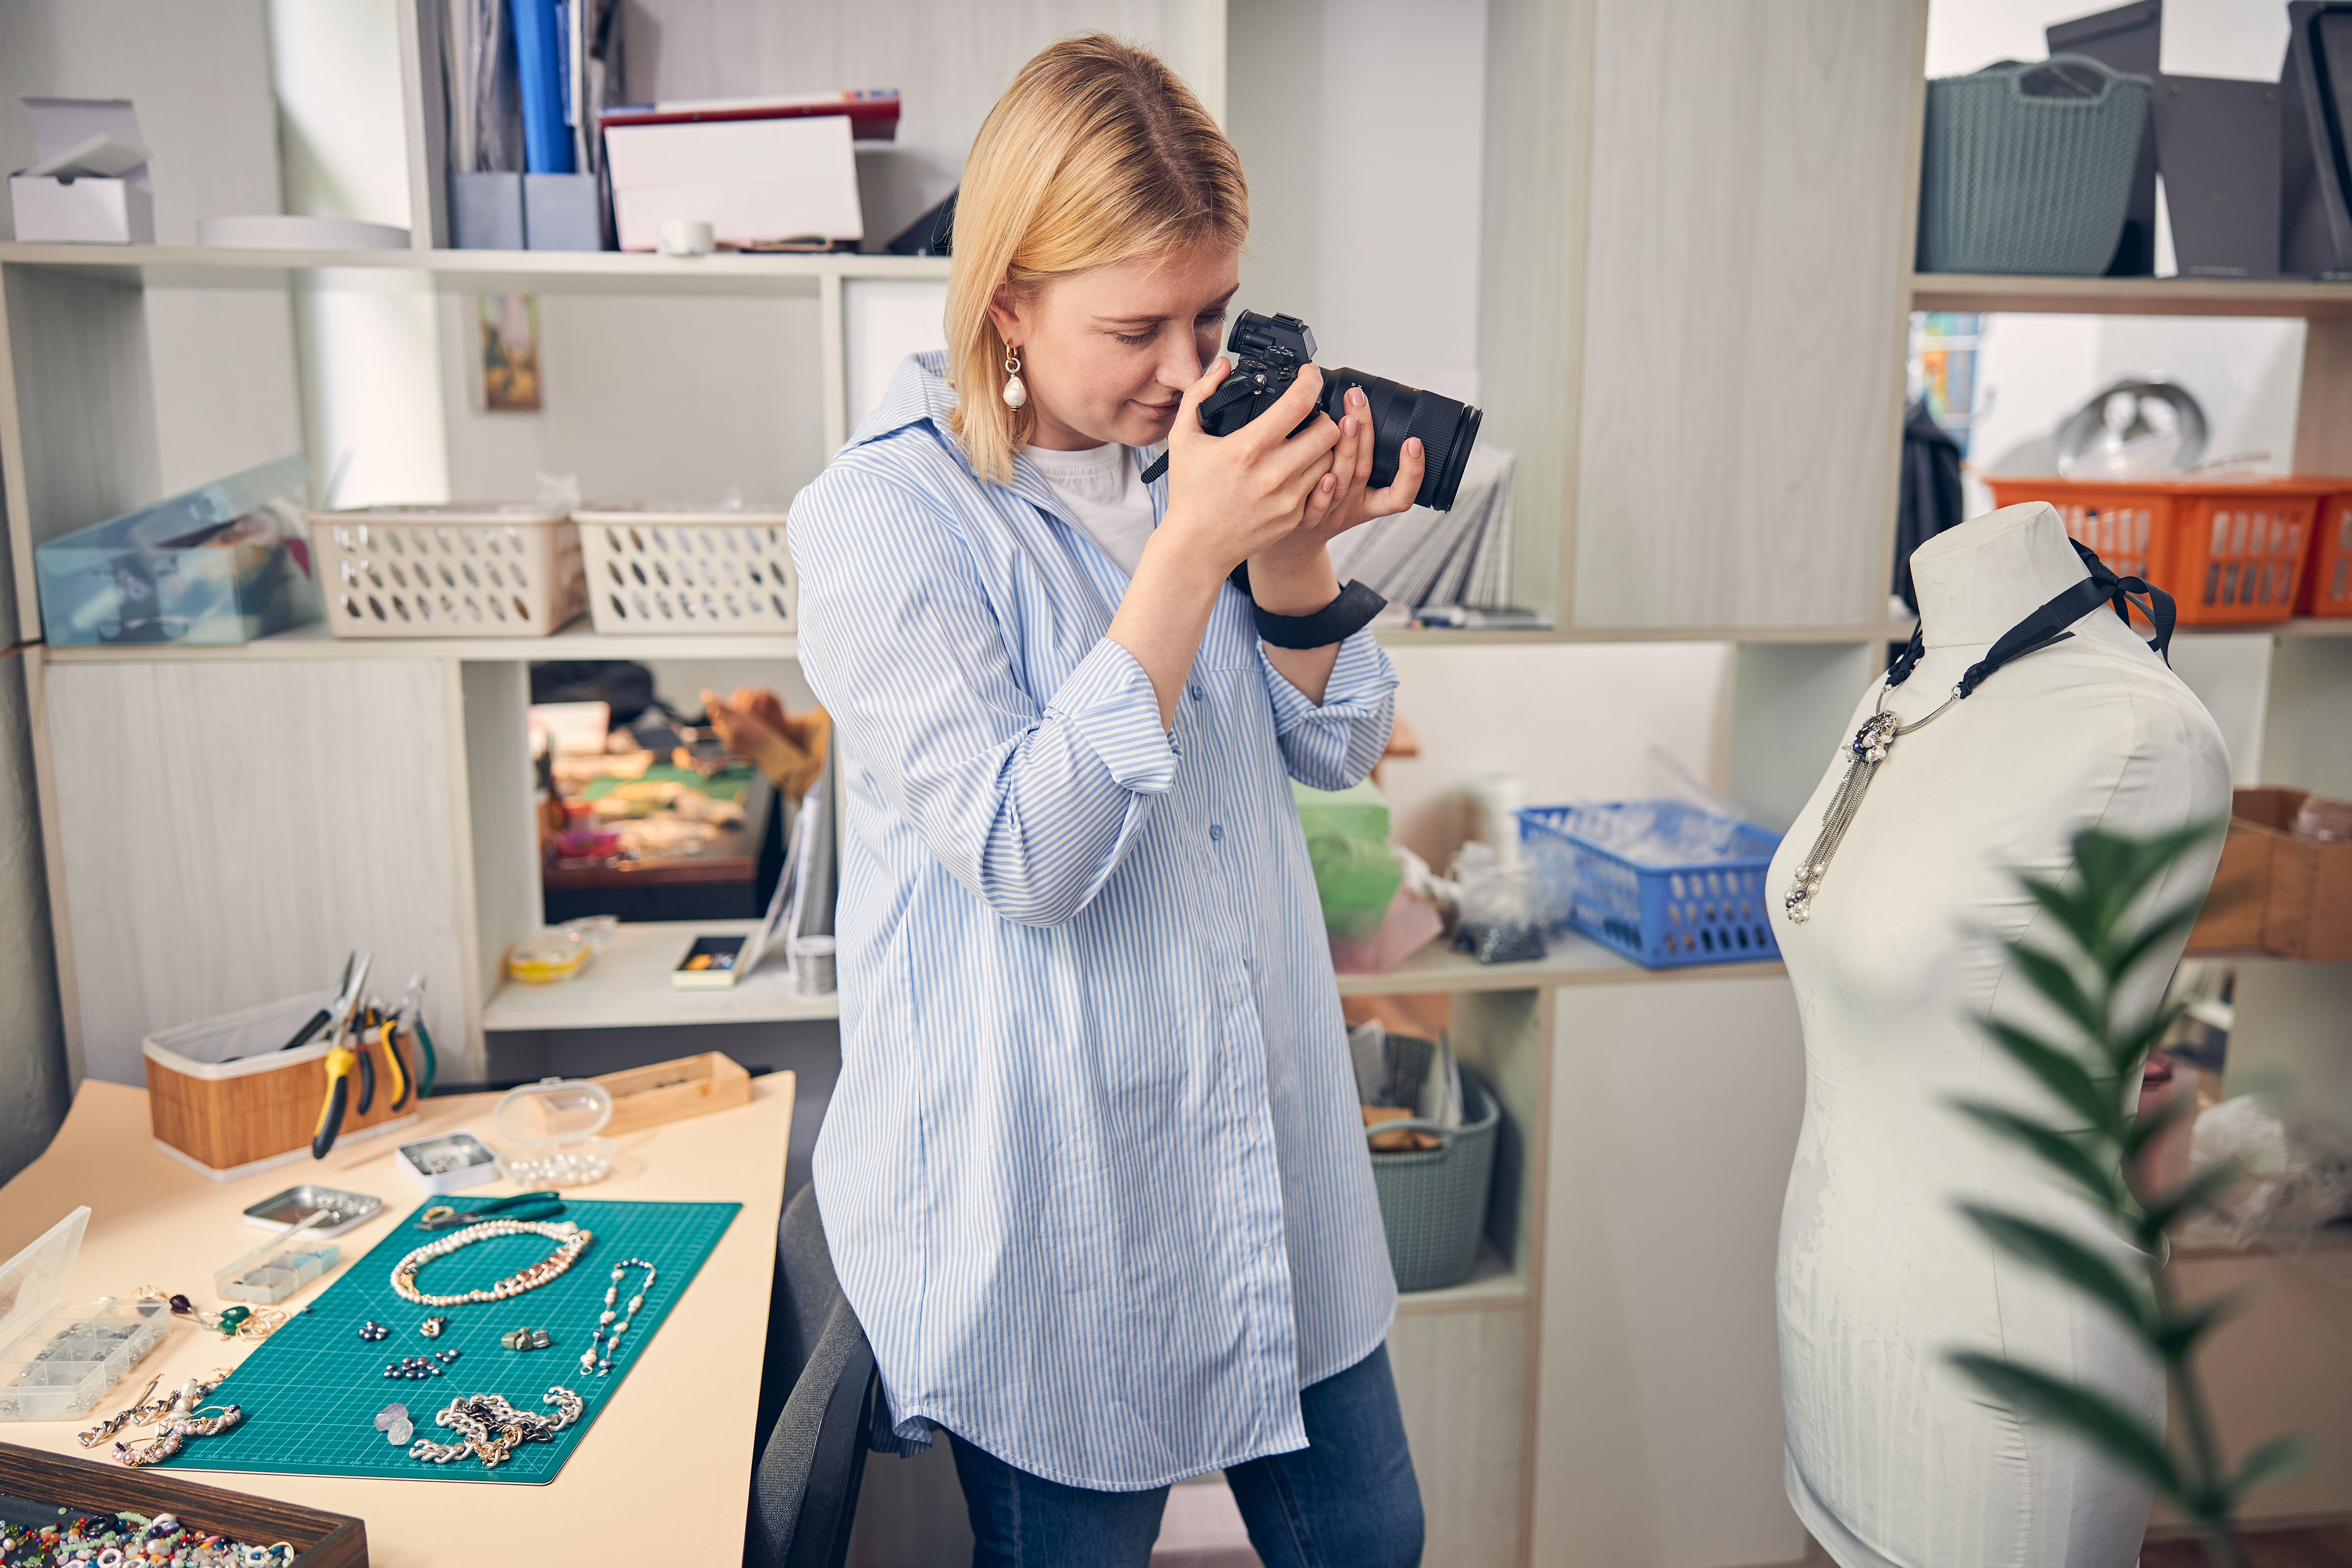 Woman photographing jewelry